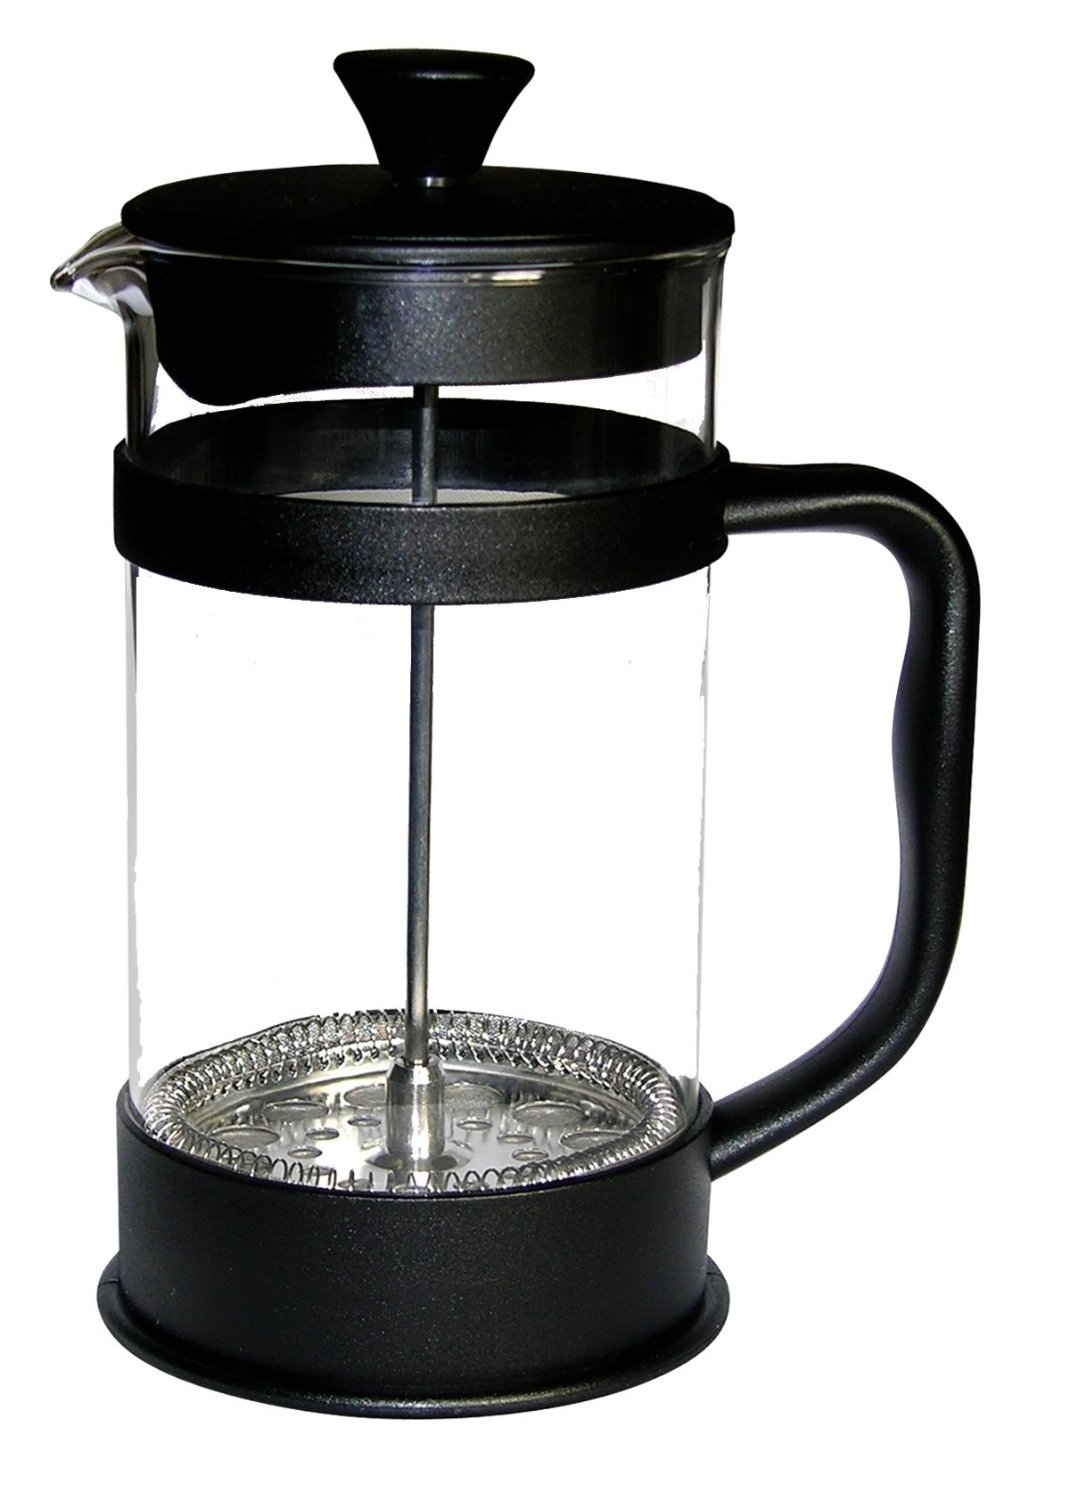 French Press Coffee Maker Meijer : Francois et Mimi Borosilicate Glass French Press Coffee Maker, 34-Ounce, Black - Become a Coupon ...